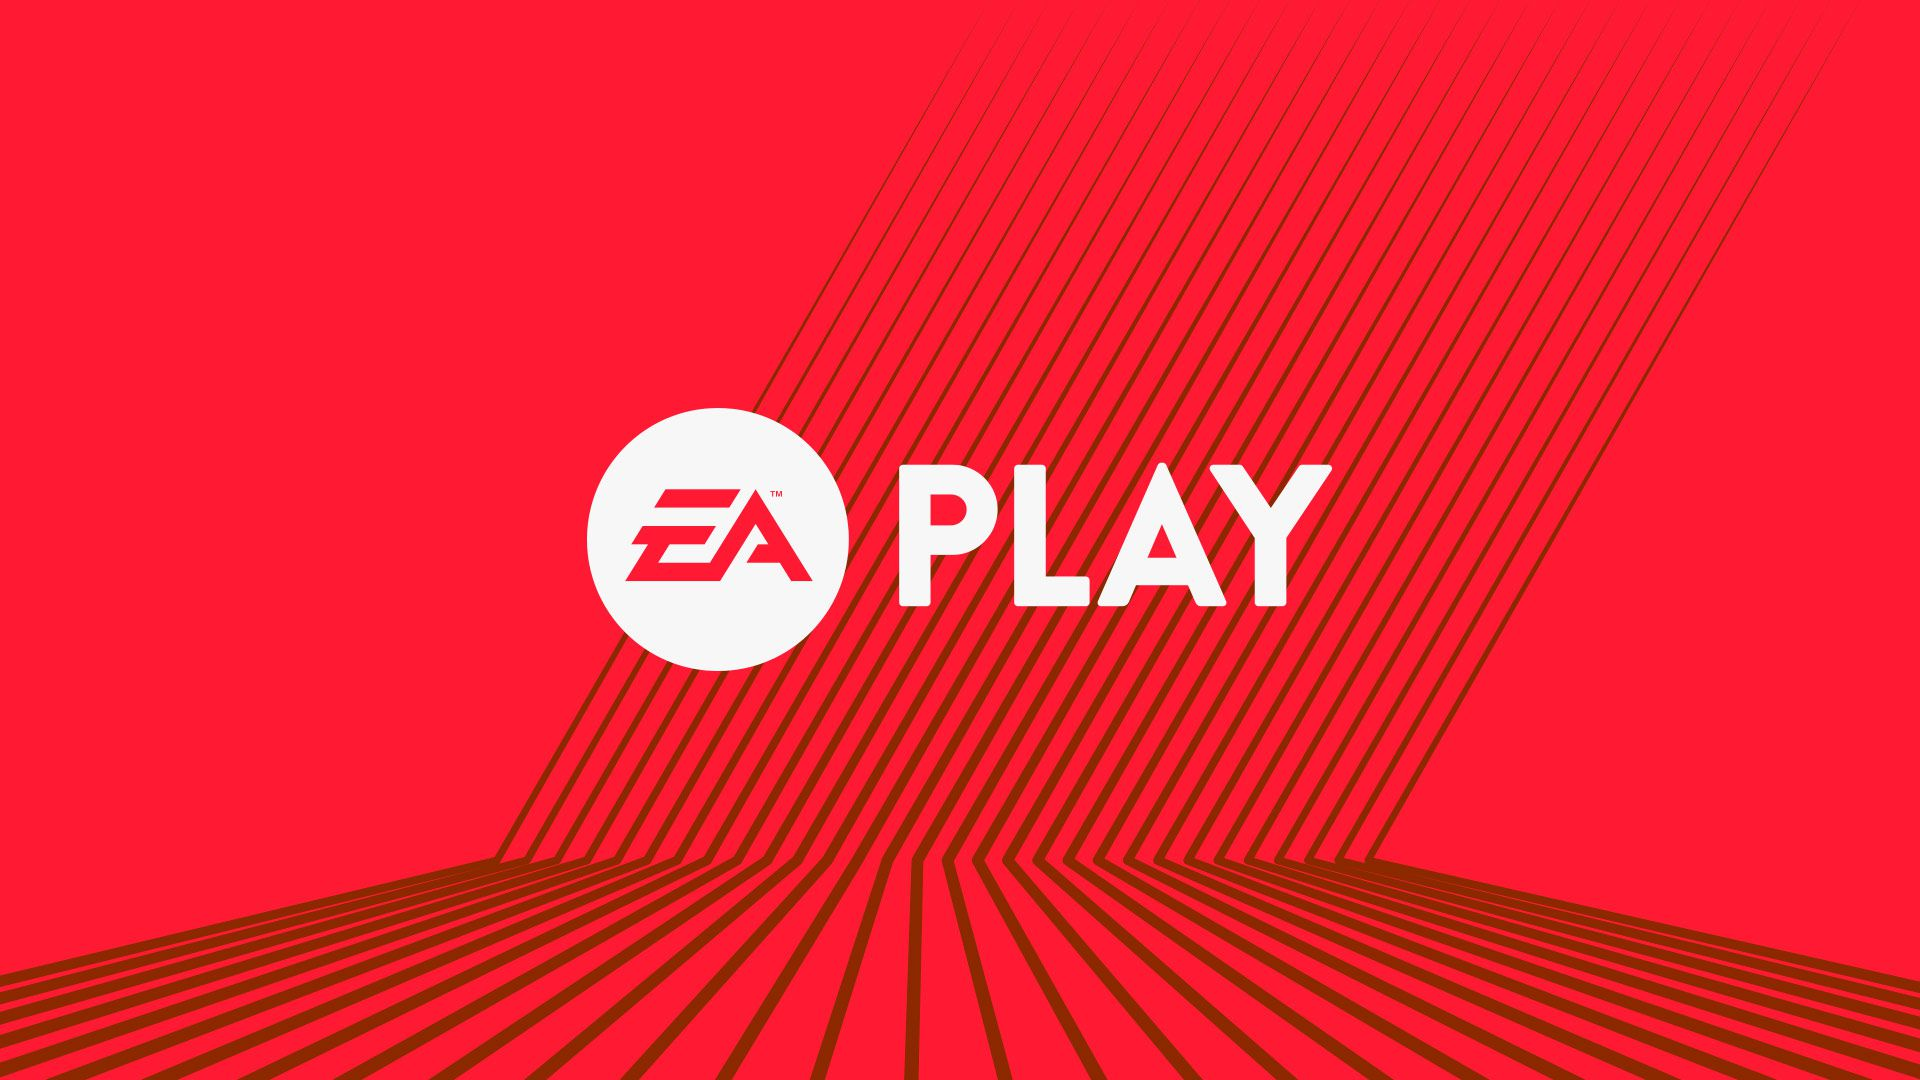 EA Play Live 2020 – Annunciate le date